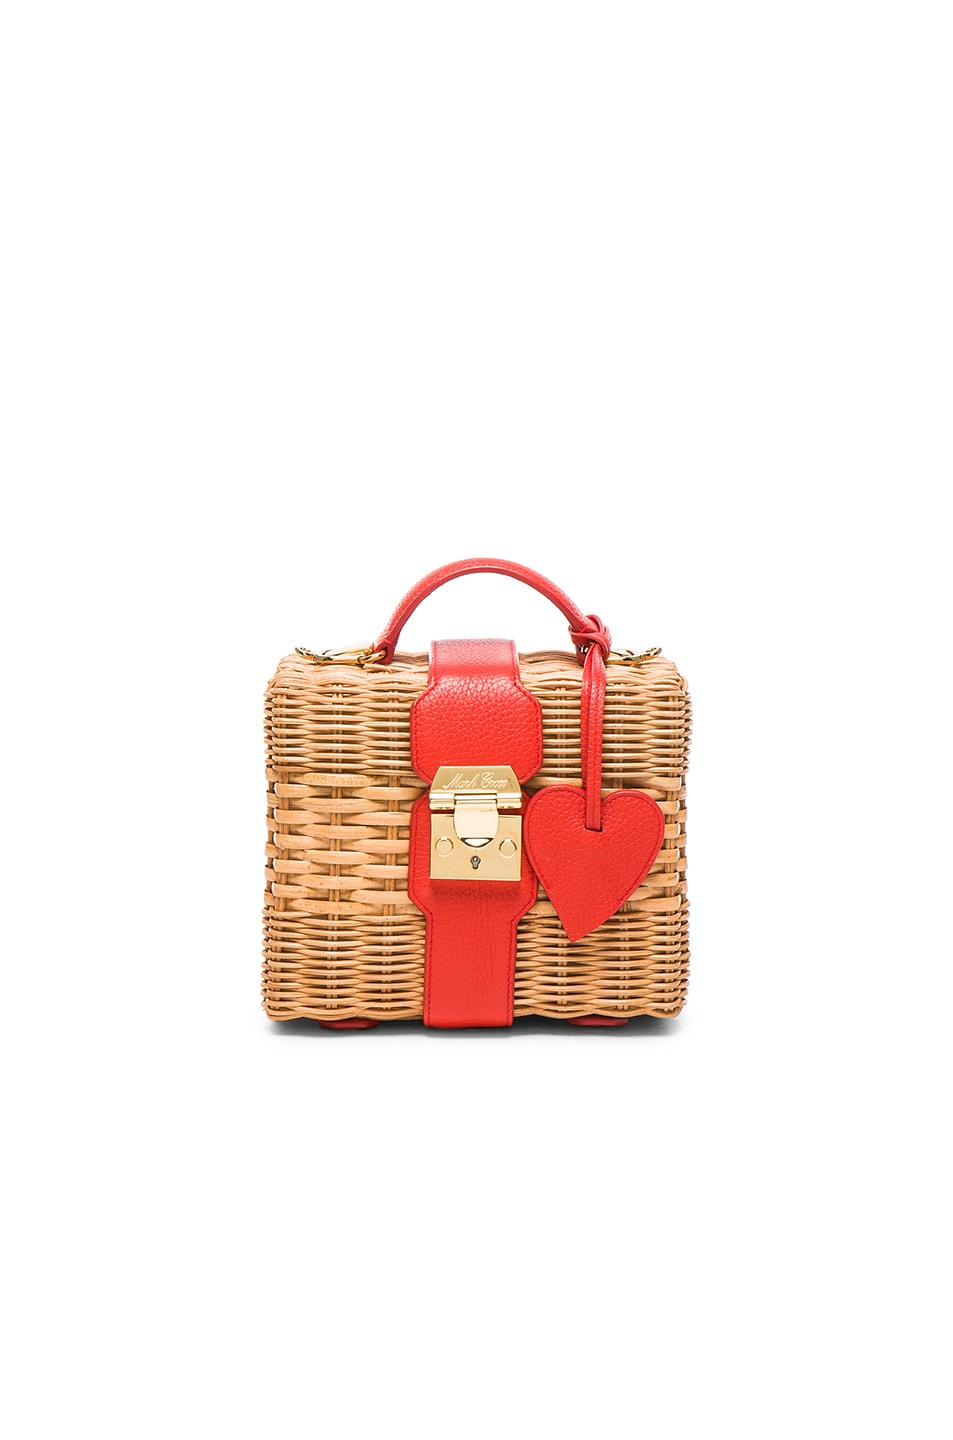 Image 1 of Mark Cross Harley Rattan Bag with Heart Charm in Bright Red Pebble